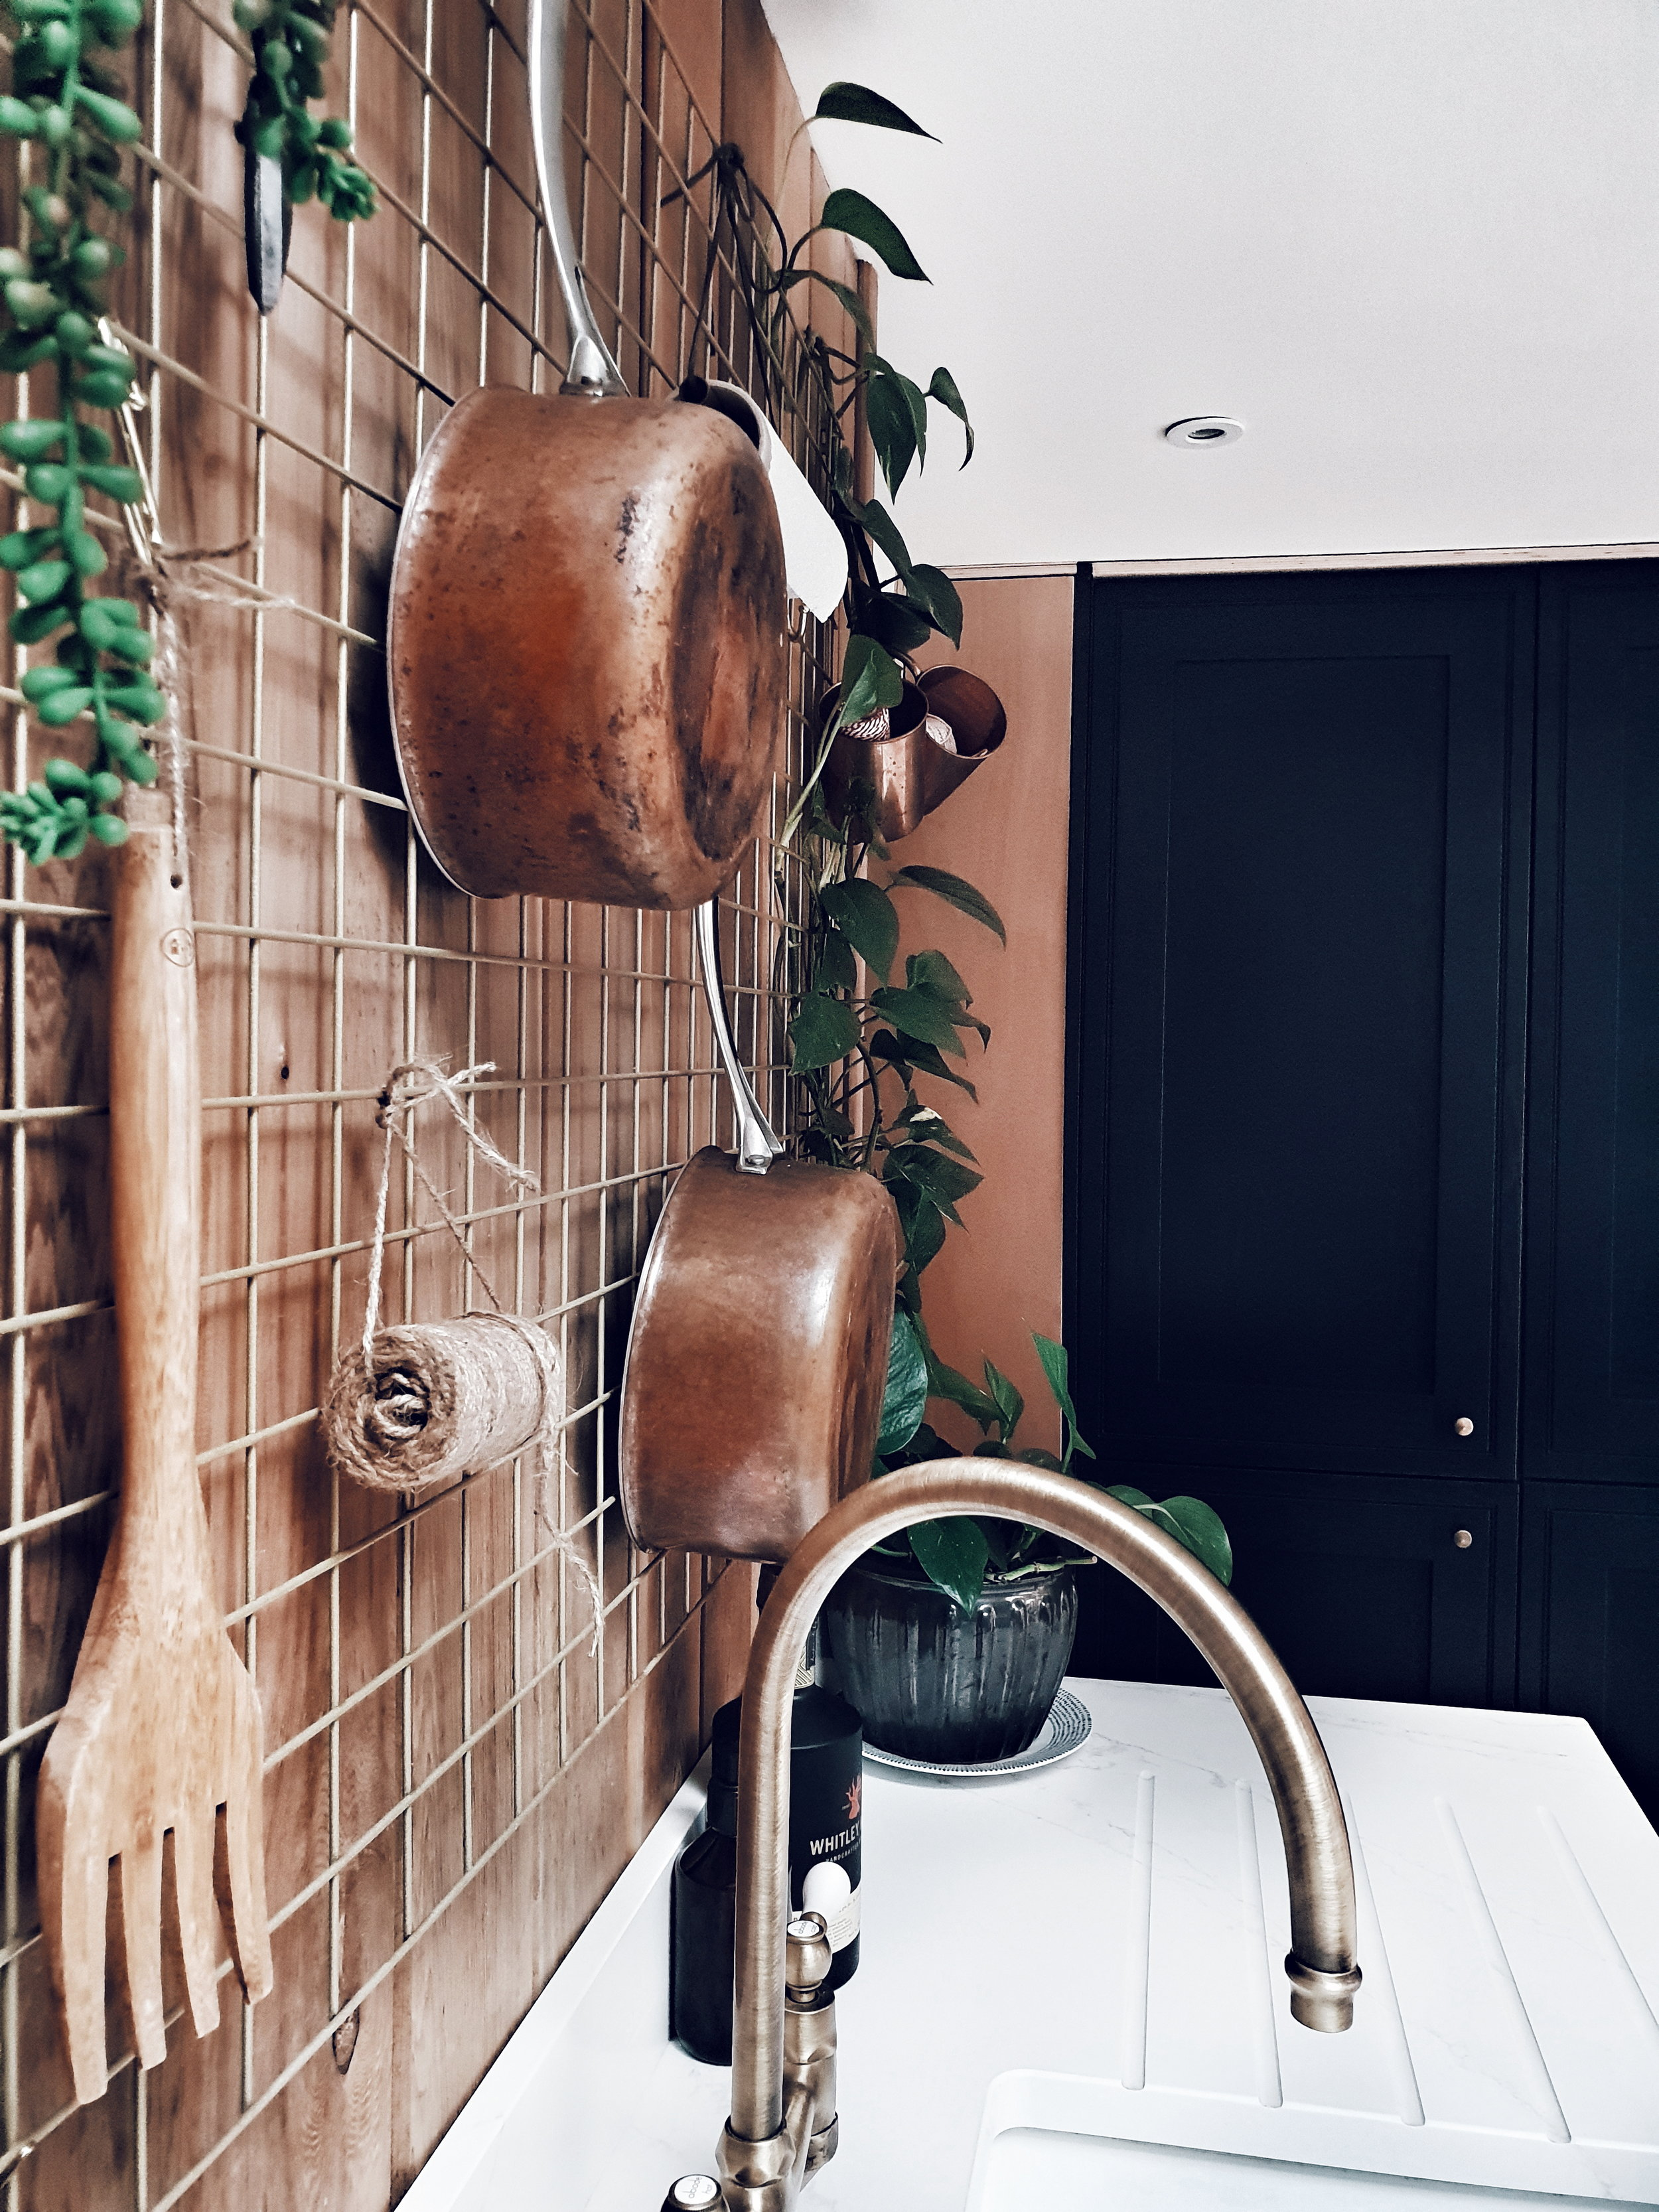 A close up of the brass kitchen tap of my dreams